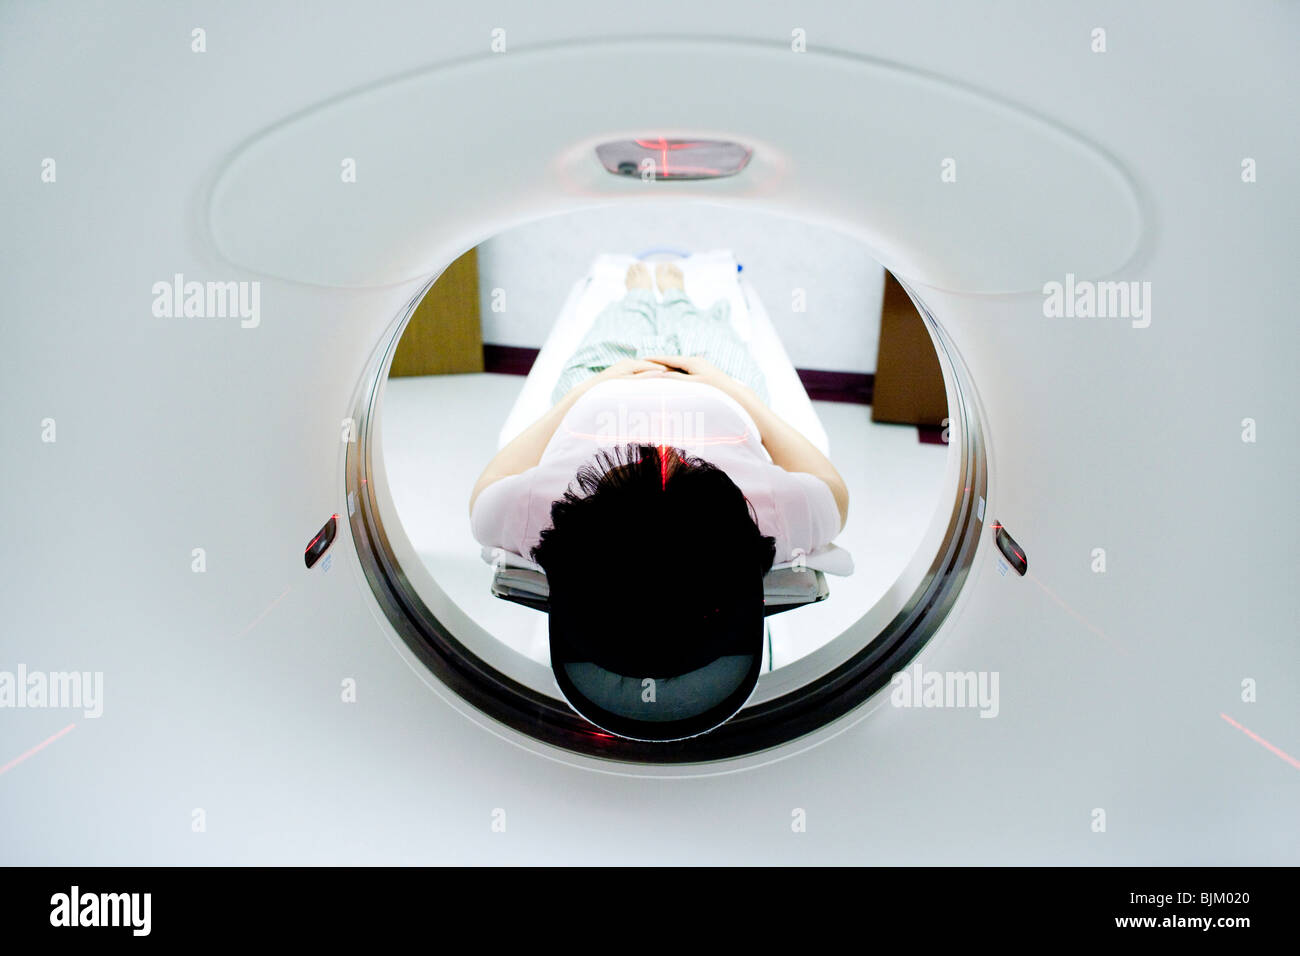 Patient entering MRI machine from behind - Stock Image